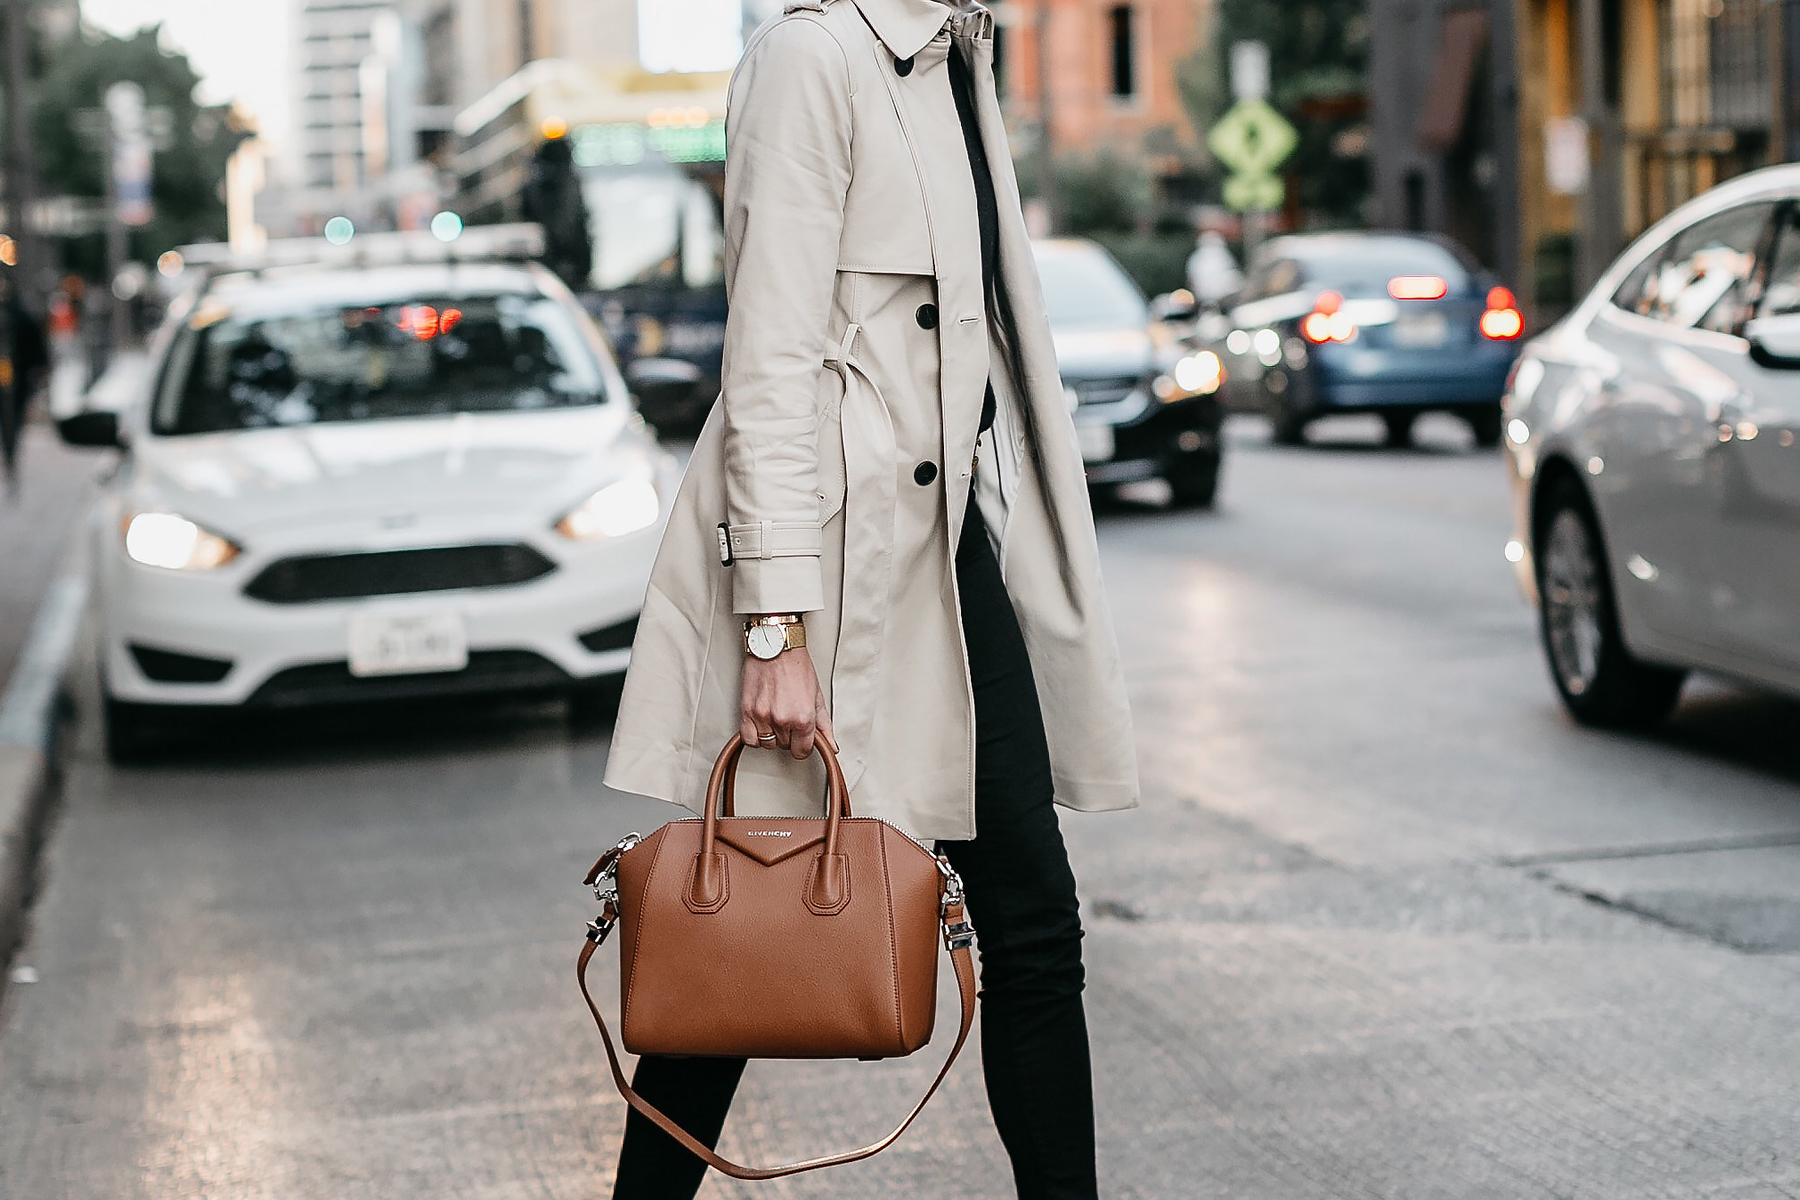 Club Monaco Trench Coat Black Skinny Jeans Givenchy Antigona Cognac Satchel Fashion Jackson Dallas Blogger Fashion Blogger Street Style